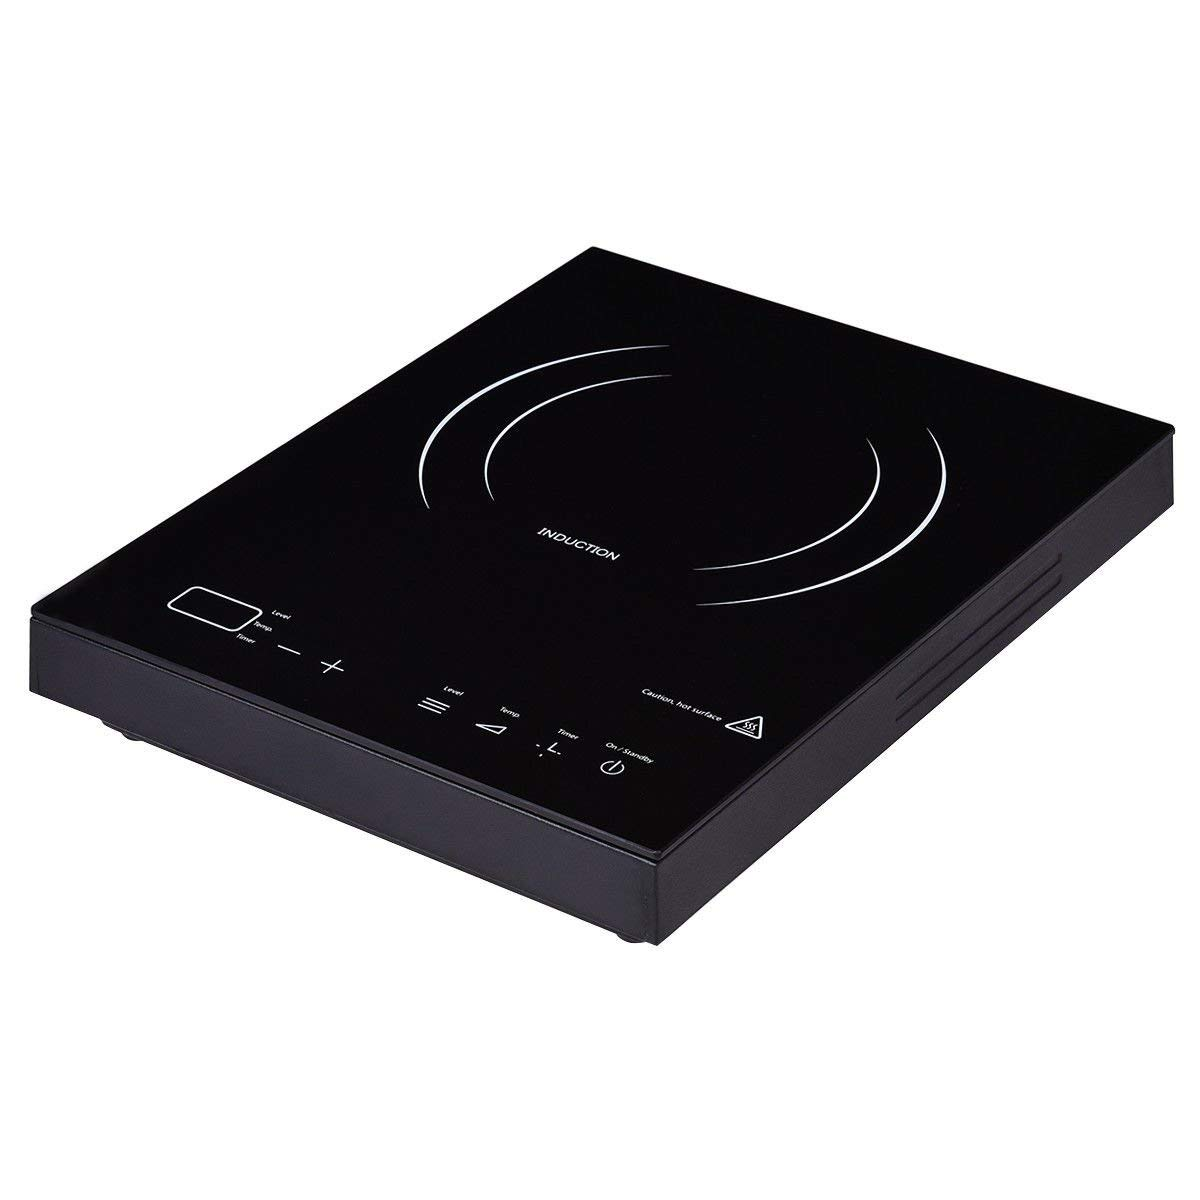 GHP 1800W Portable Black Countertop Induction Cooker with LED Display & Touch Control